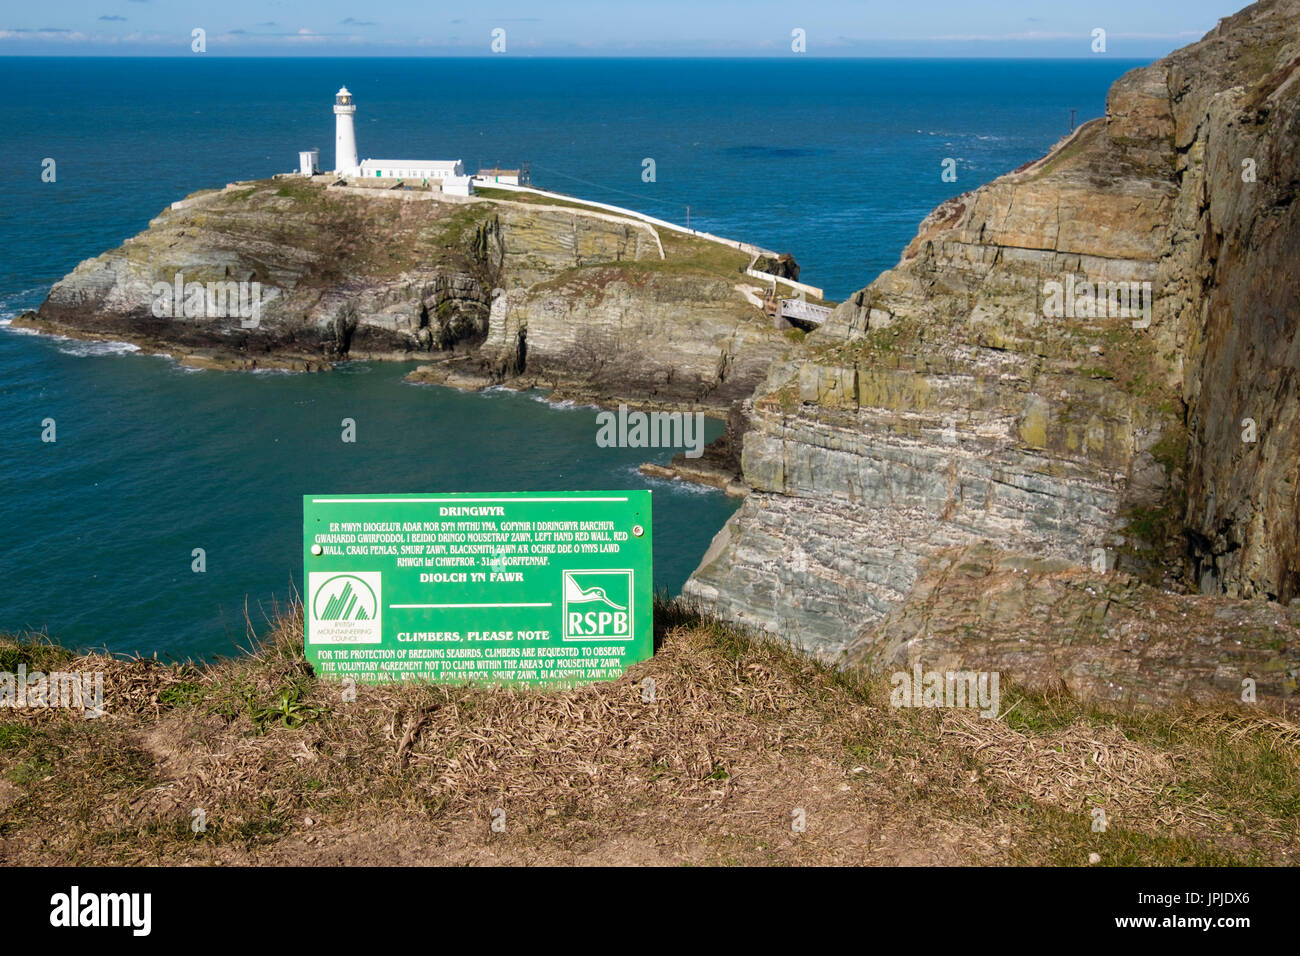 British Mountaineering Council and RSPB voluntary agreement notice to climbers about protecting nesting birds on sea cliffs at South Stack Anglesey UK - Stock Image